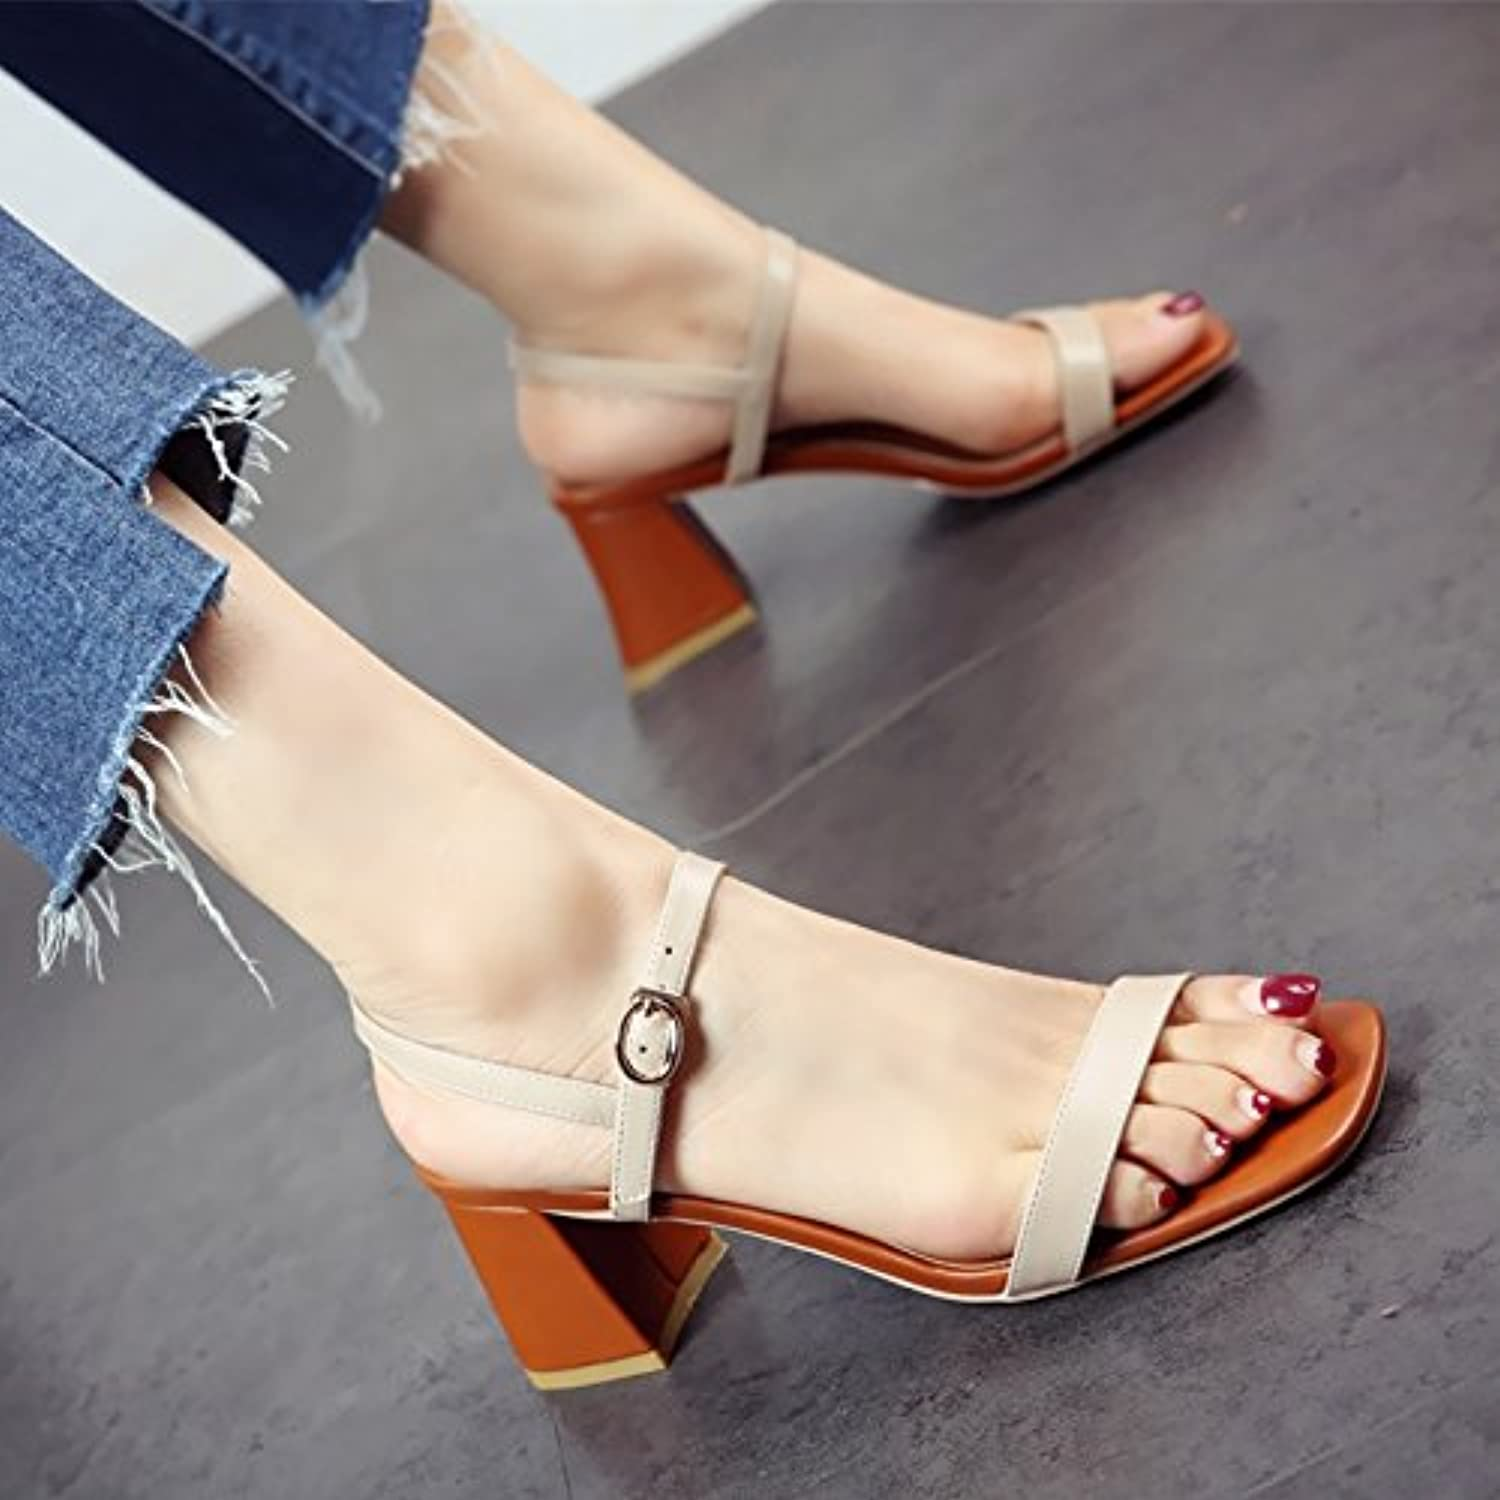 e3066c4a54cb YMFIE Ladies square heel toe toe sandals sandals sandals summer comfort  temperament high heeled shoes fashion work shoes B07DJ9W3R7 Parent 2e3861